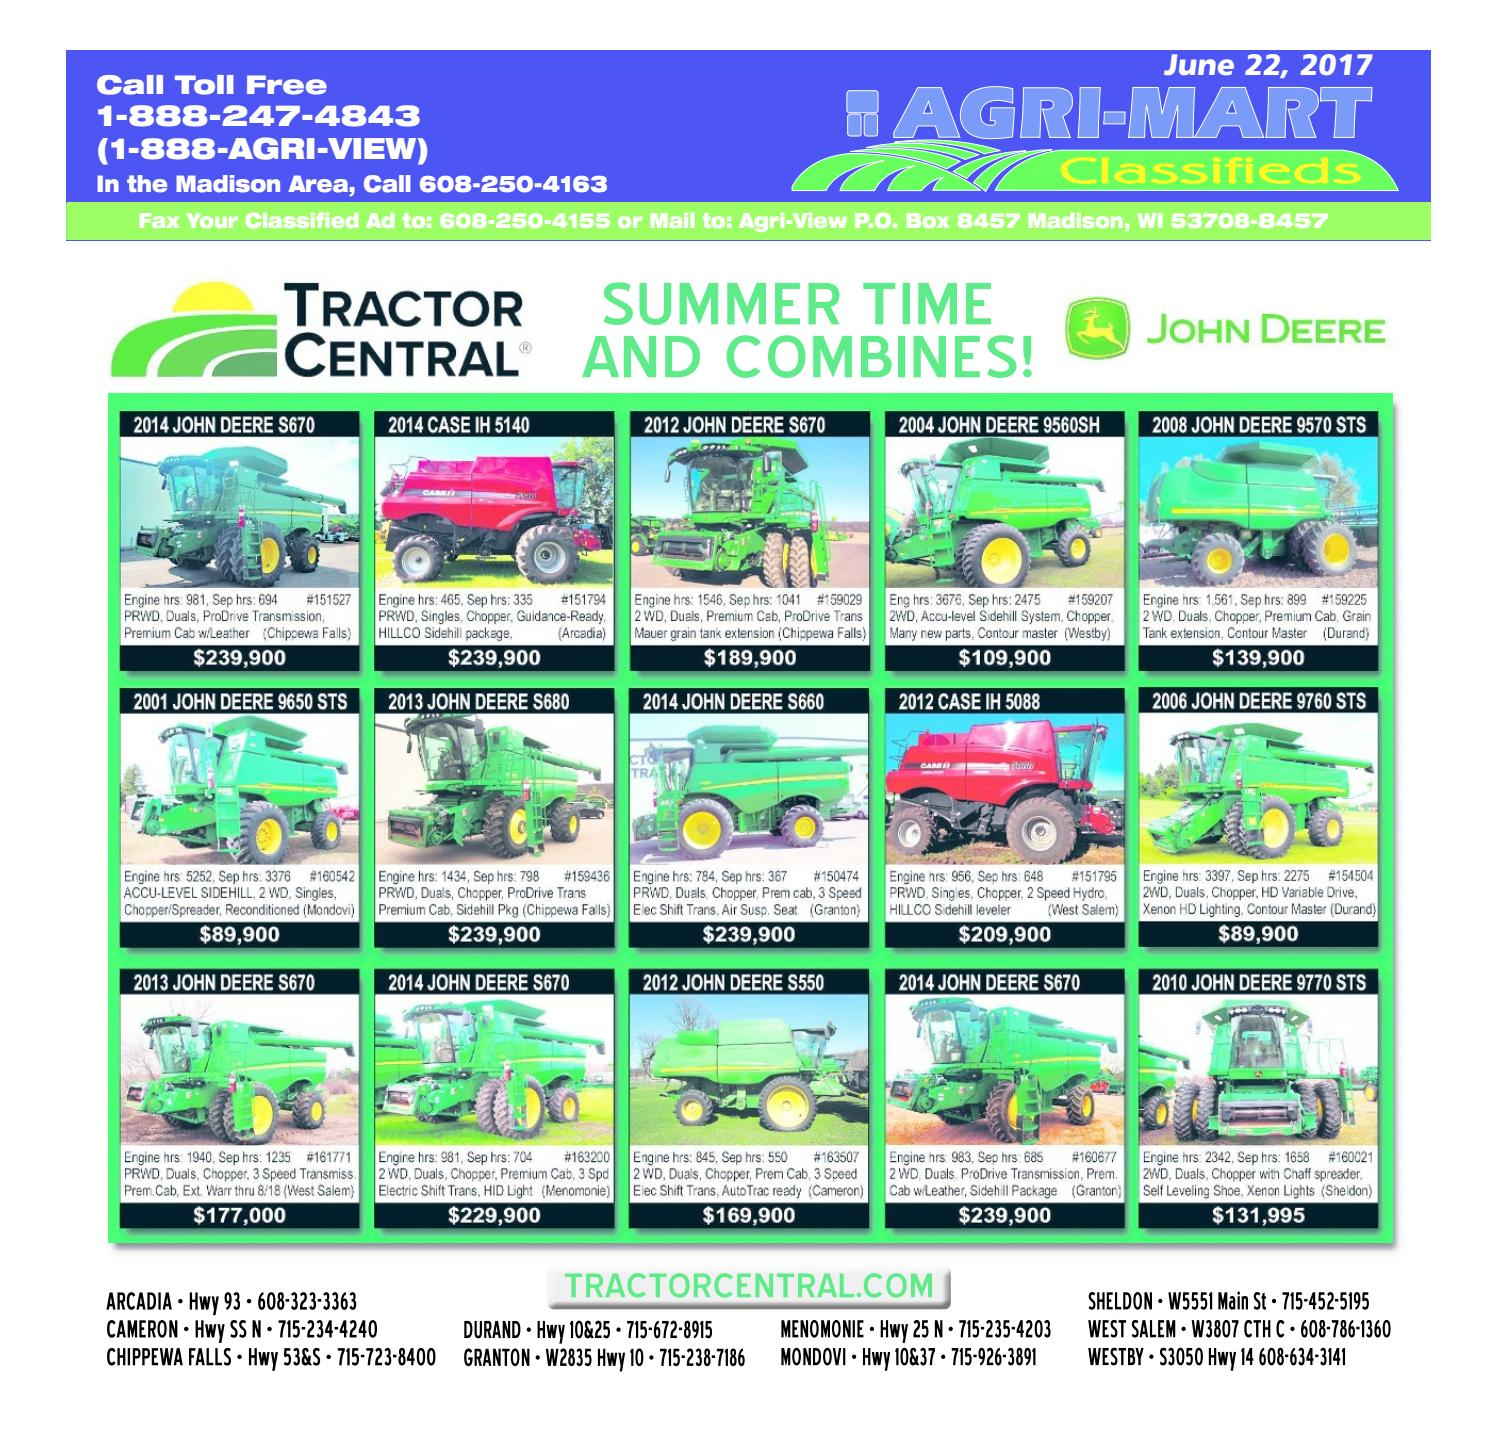 June 22, 2017 Agri-Mart by Madison com - issuu